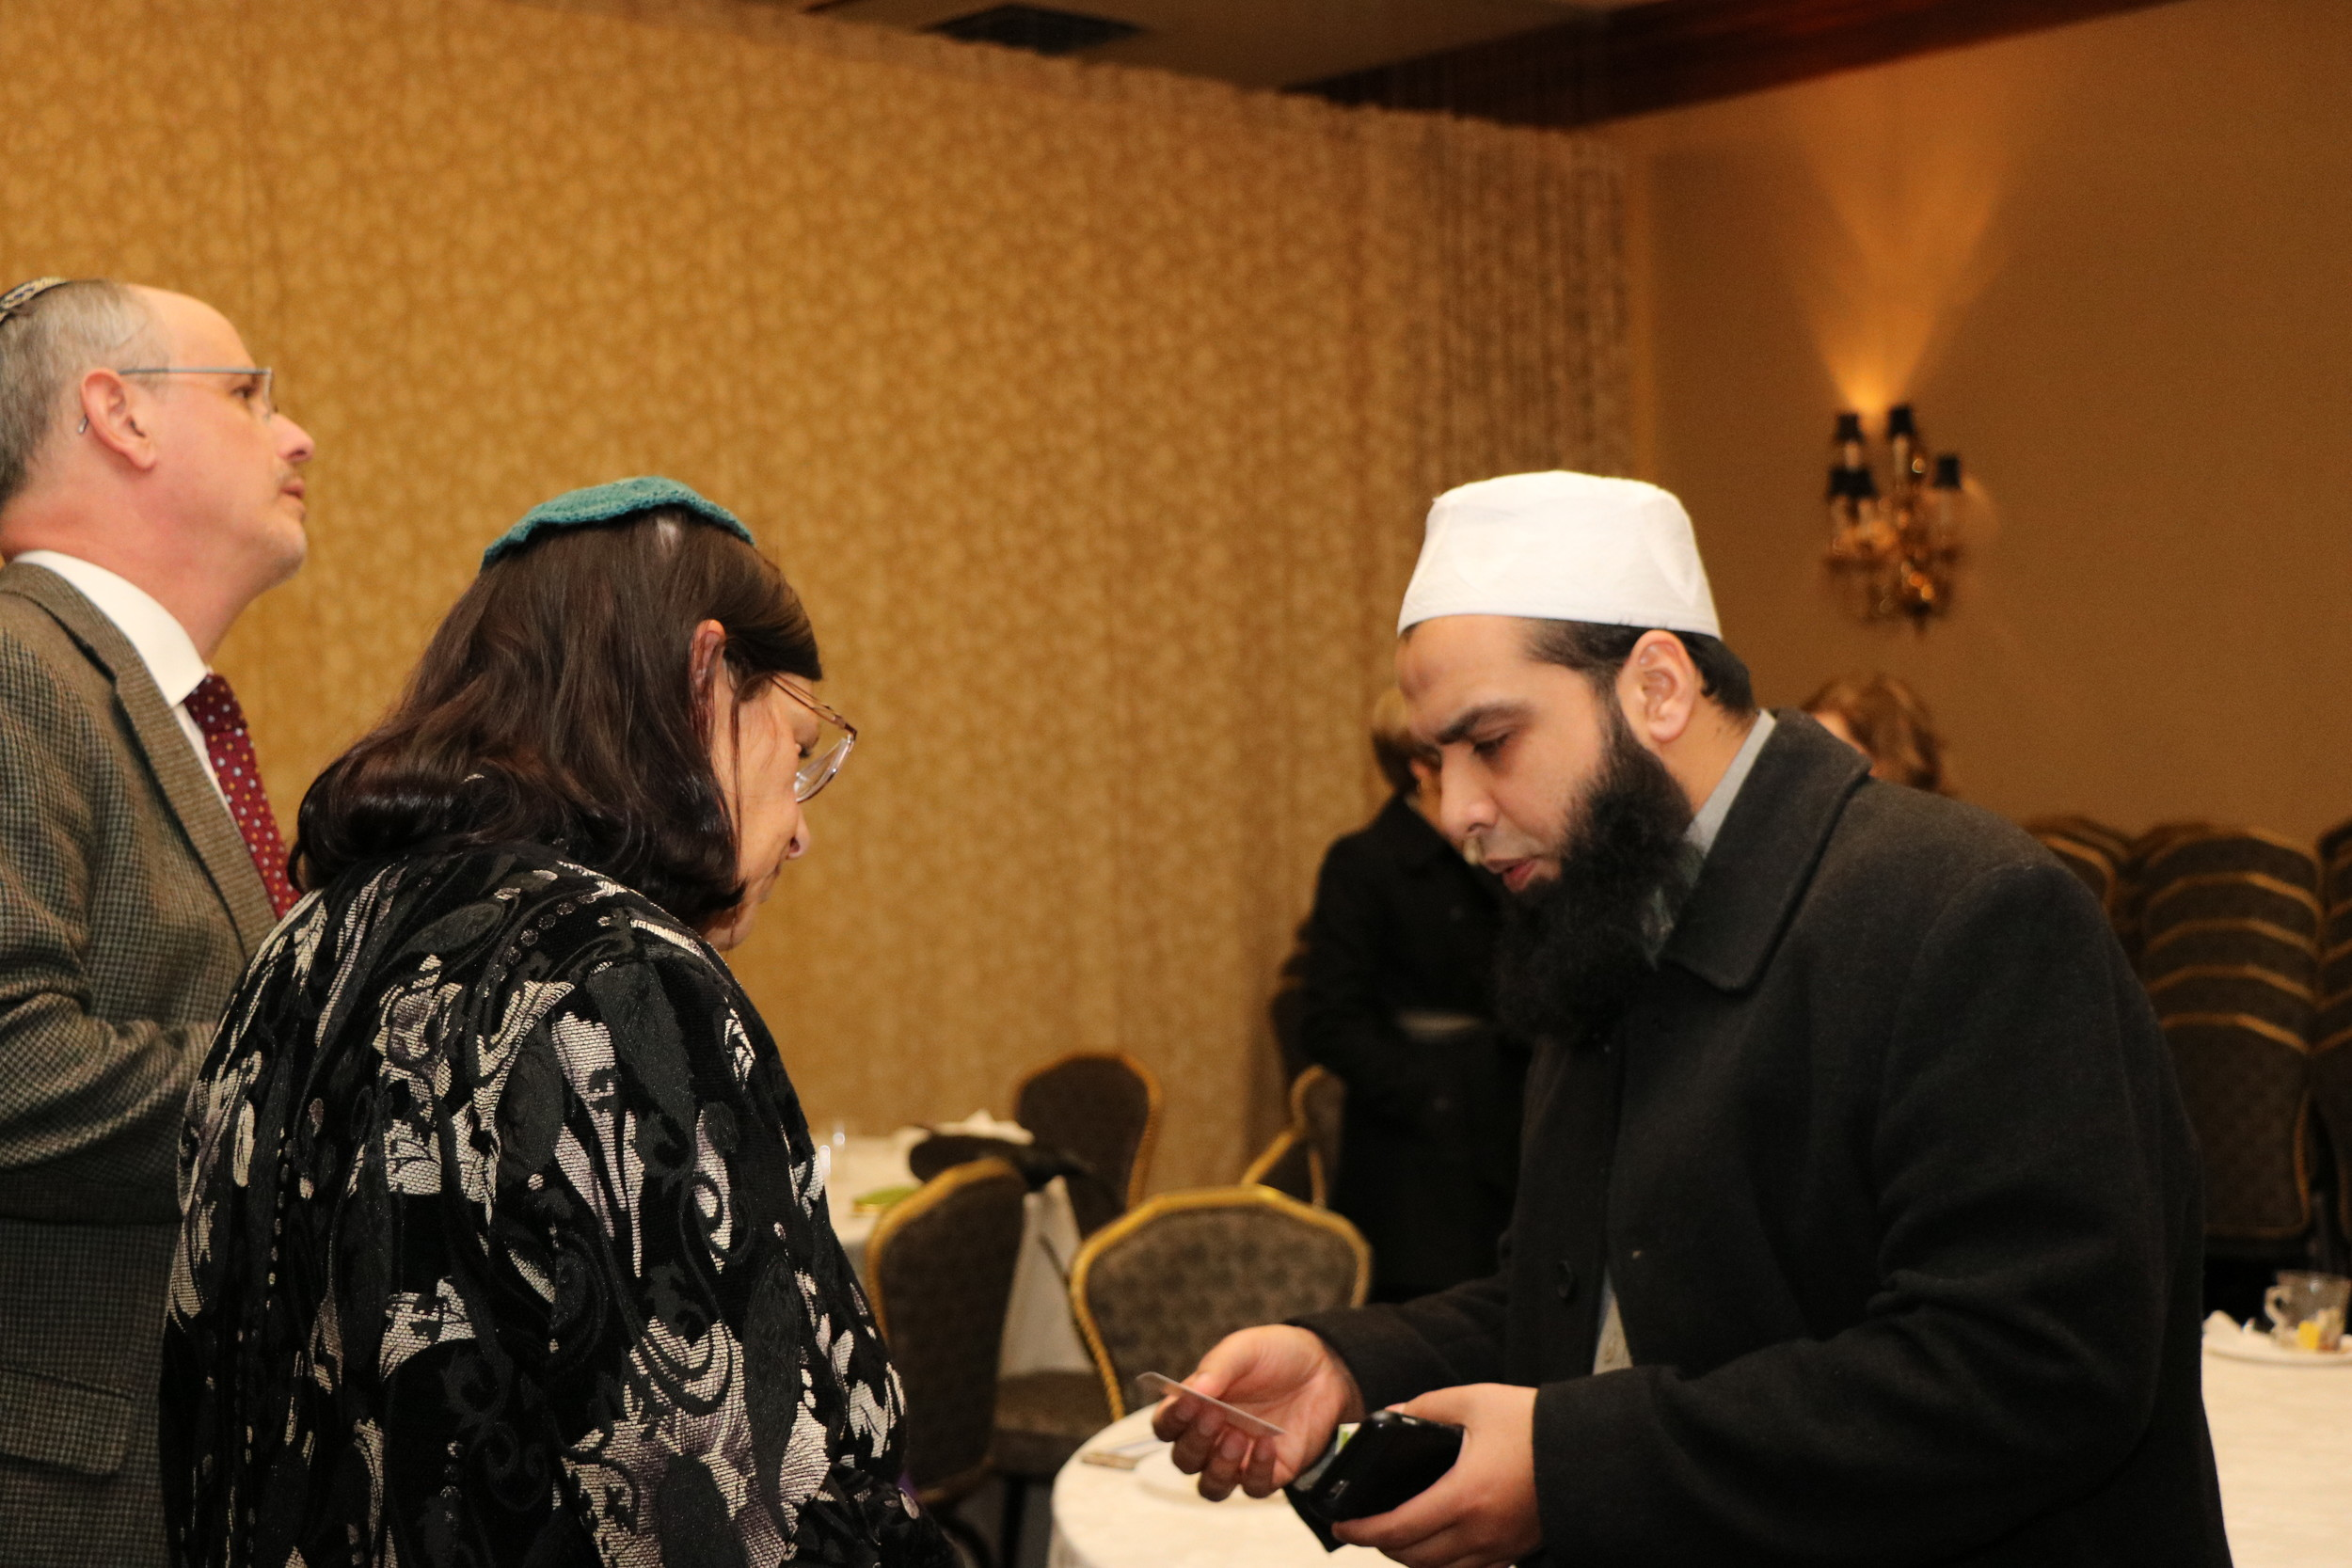 Rabbi Susan Elkodsi of the Malverne Jewish Center with Mufti Dr. Mohammad Farhan, who leads several mosques on Long Island, including the Masjid Hamza Islamic Center of South Shore in Valley Stream.